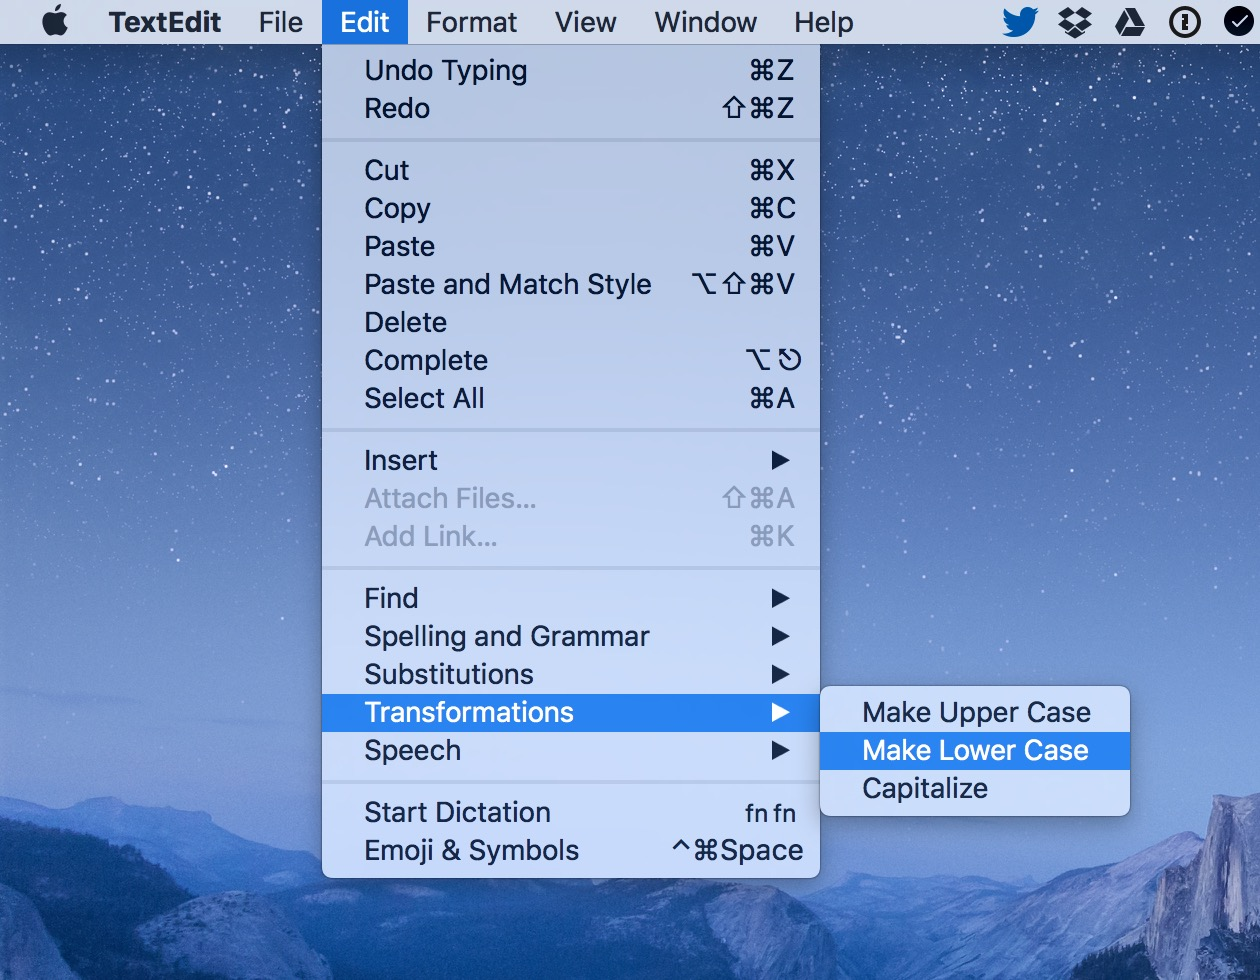 macOS Edit Transformations menu option in TextEdit